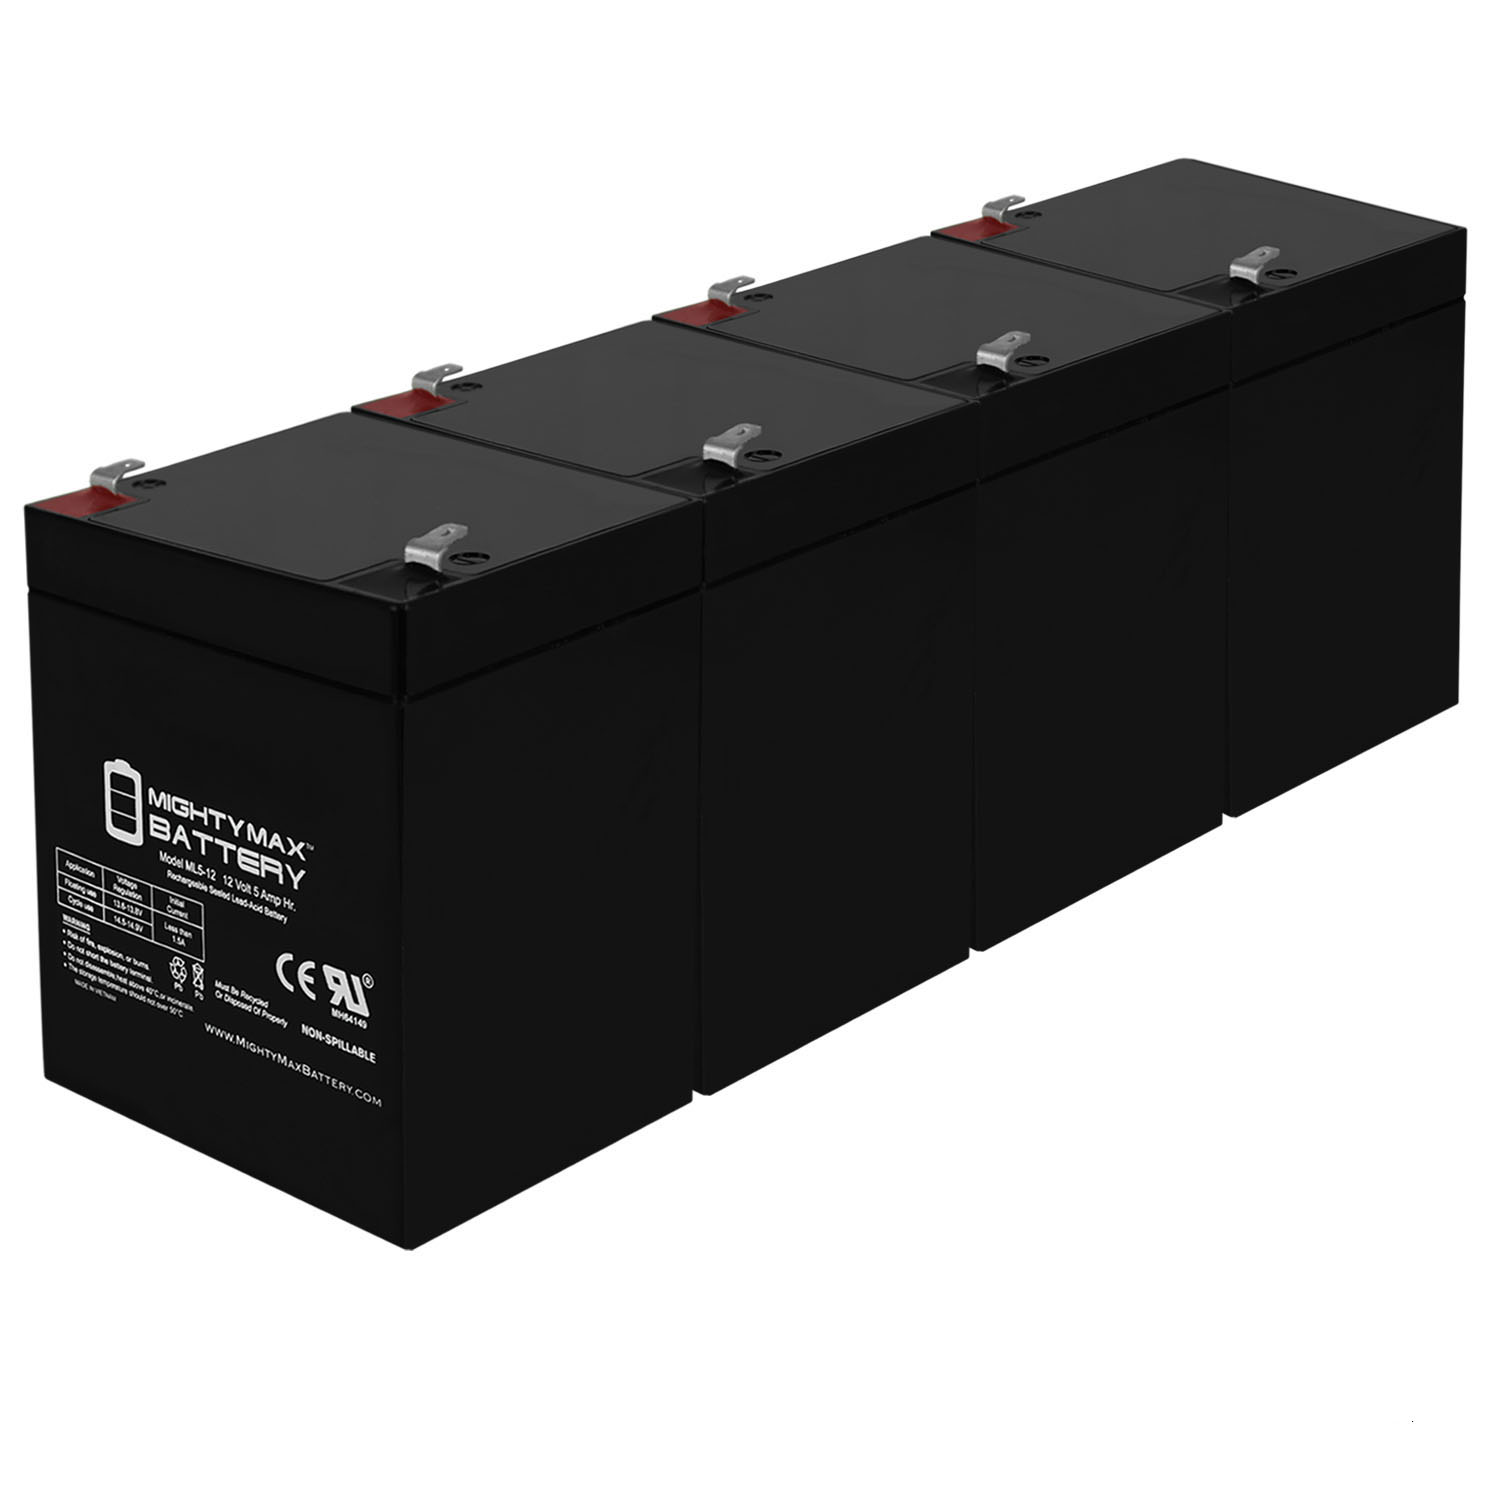 12V 5AH SLA Battery Replacement for Gas RG1250T1 - 4 Pack